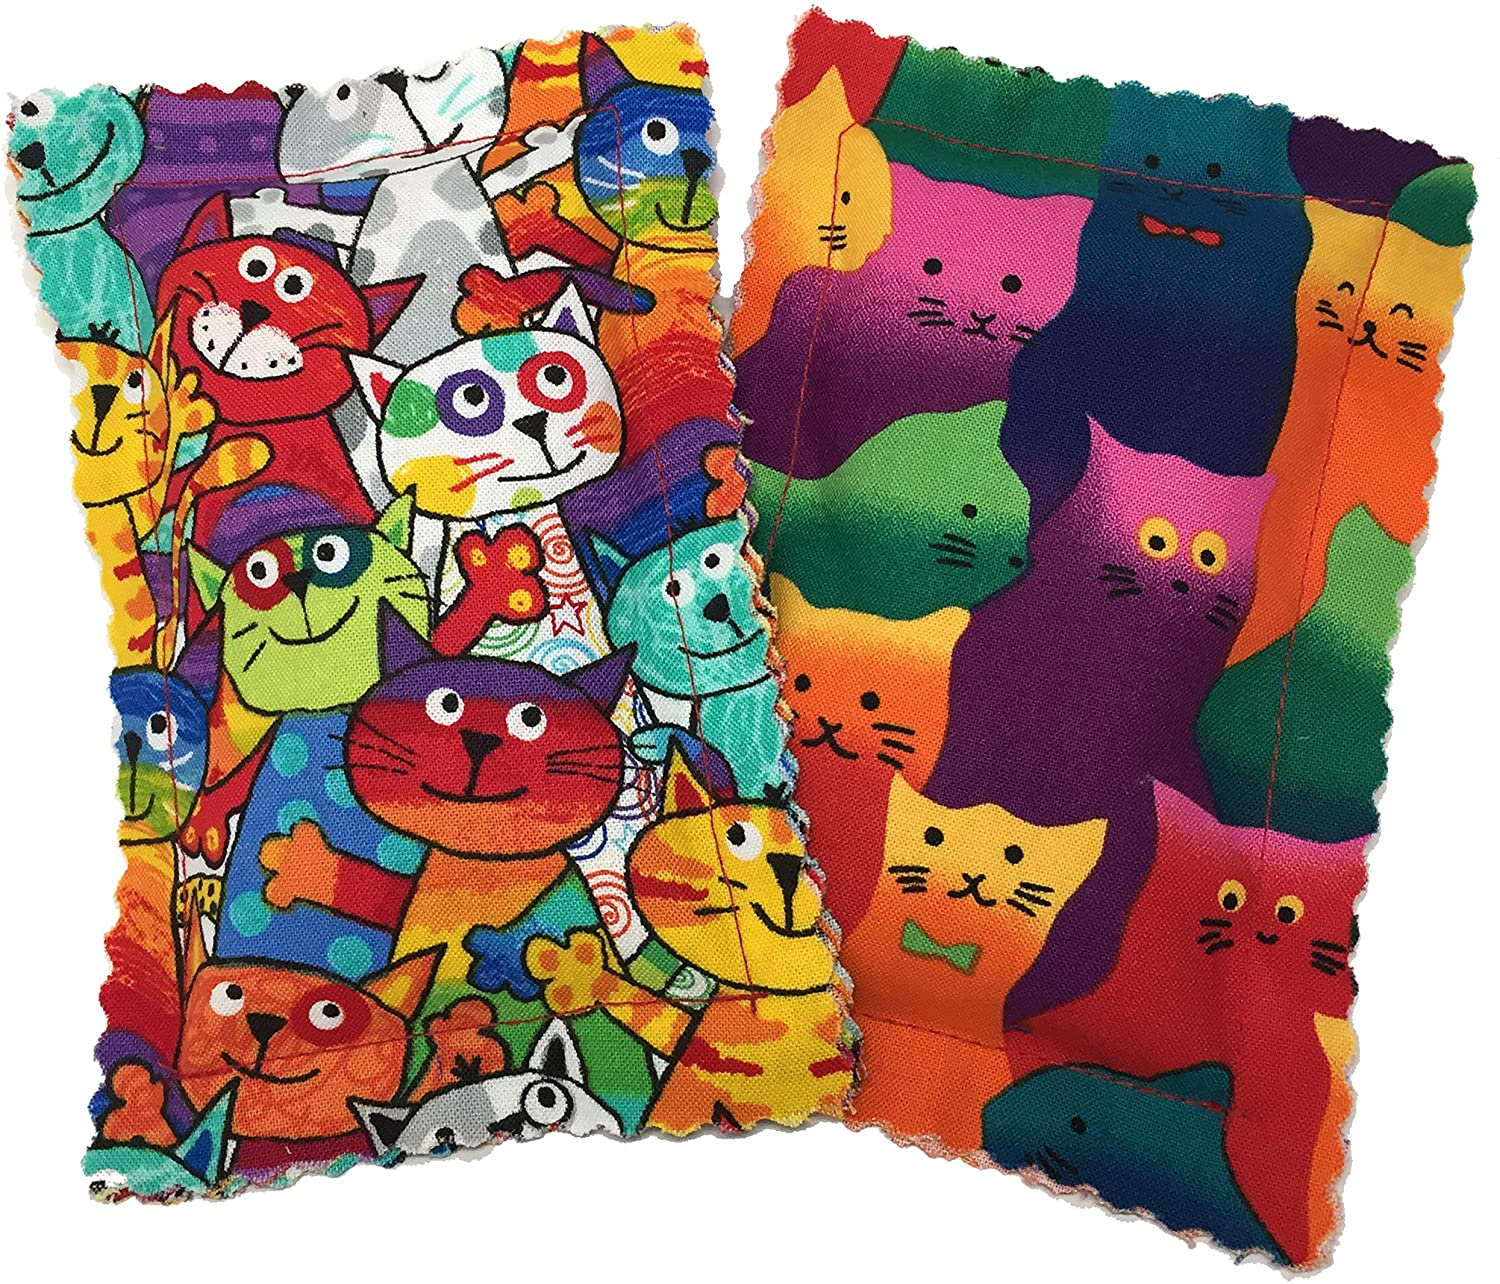 Johnson Pet Products Catnip Pillow Sacks Two Pack Crazy Cat III- Handmade in The USA